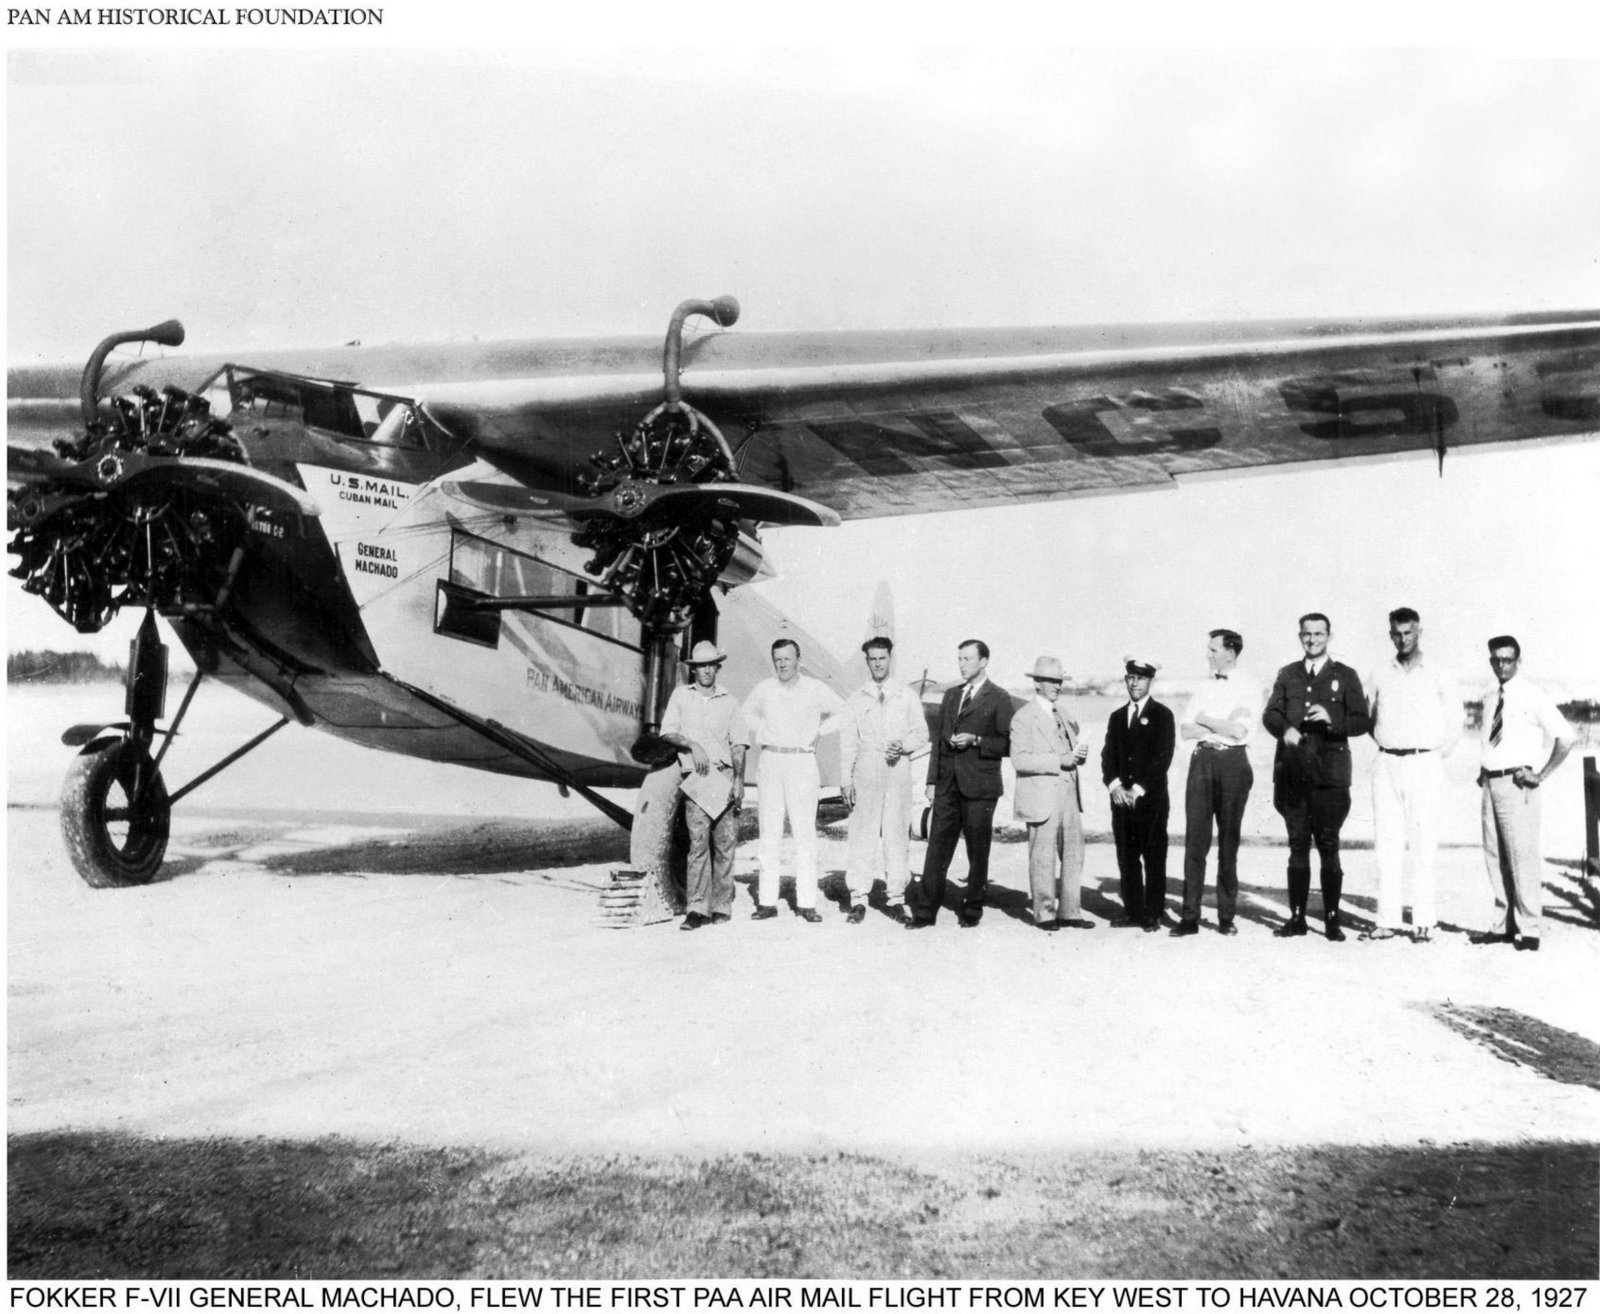 First Pan-Am flight - Fokker F-VII General Machado (1927)